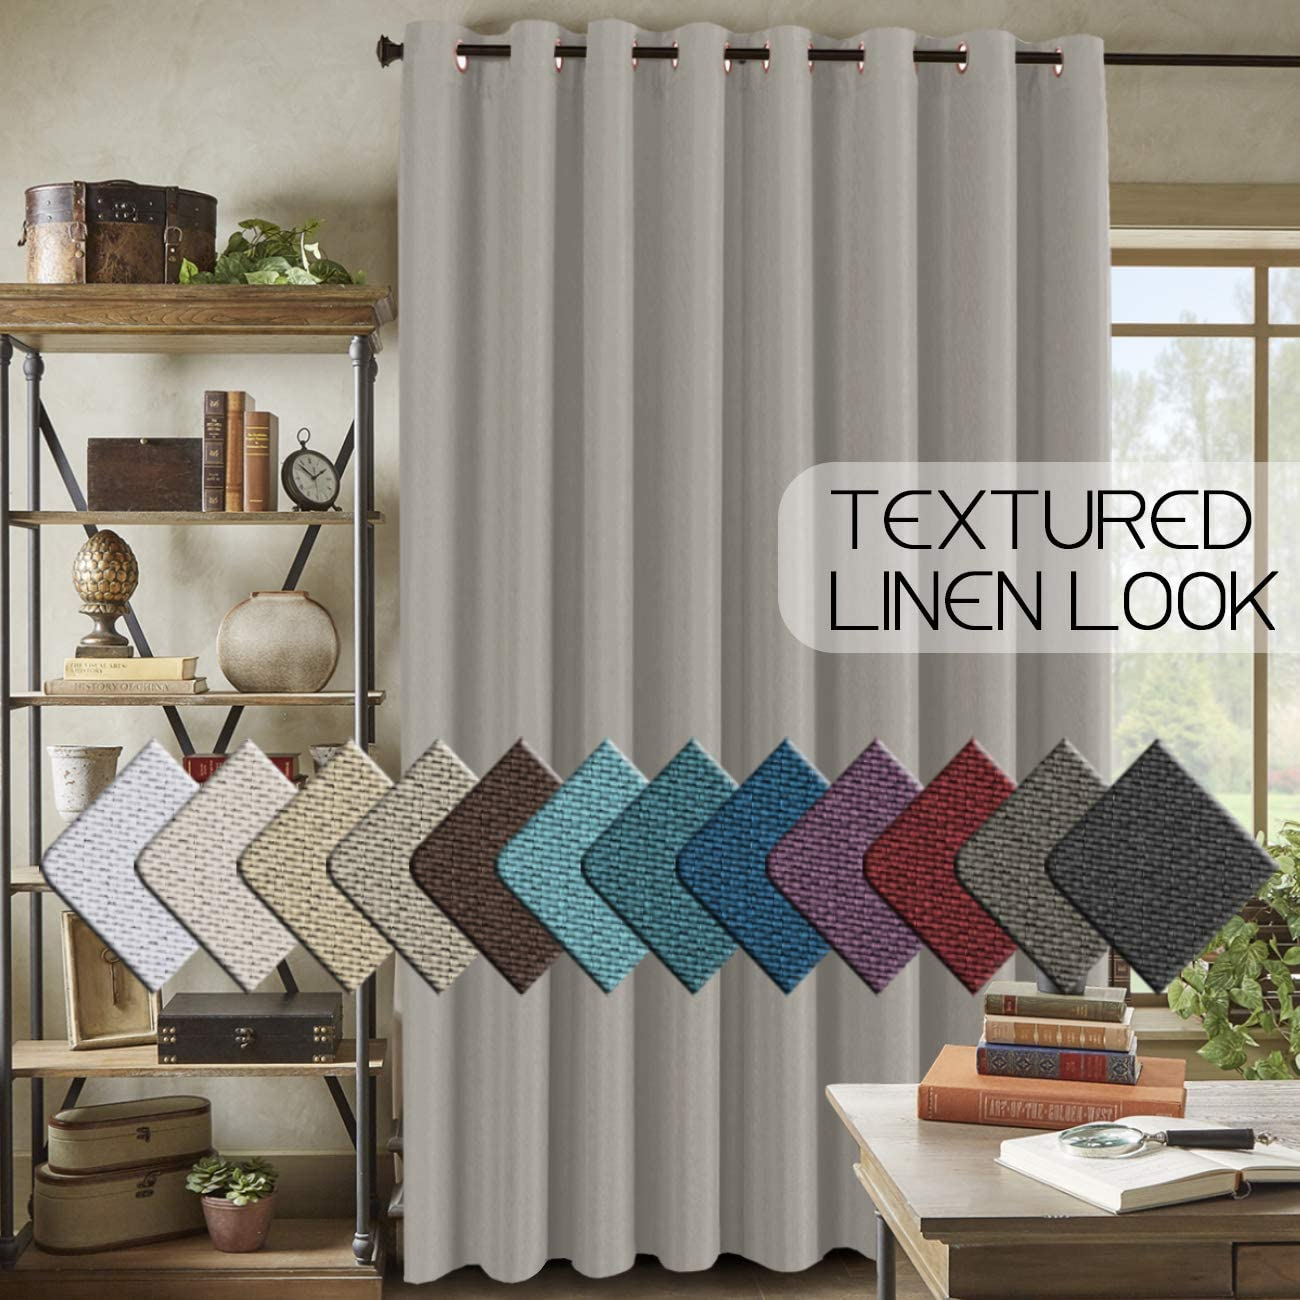 H.VERSAILTEX Room Darkening Linen Curtain for Bedroom / Living Room Extra Wide Blackout Curtains 100 x 96 Inches for Patio Glass Door, Primitive Textured Thick Linen Burlap Look Fabric, Taupe